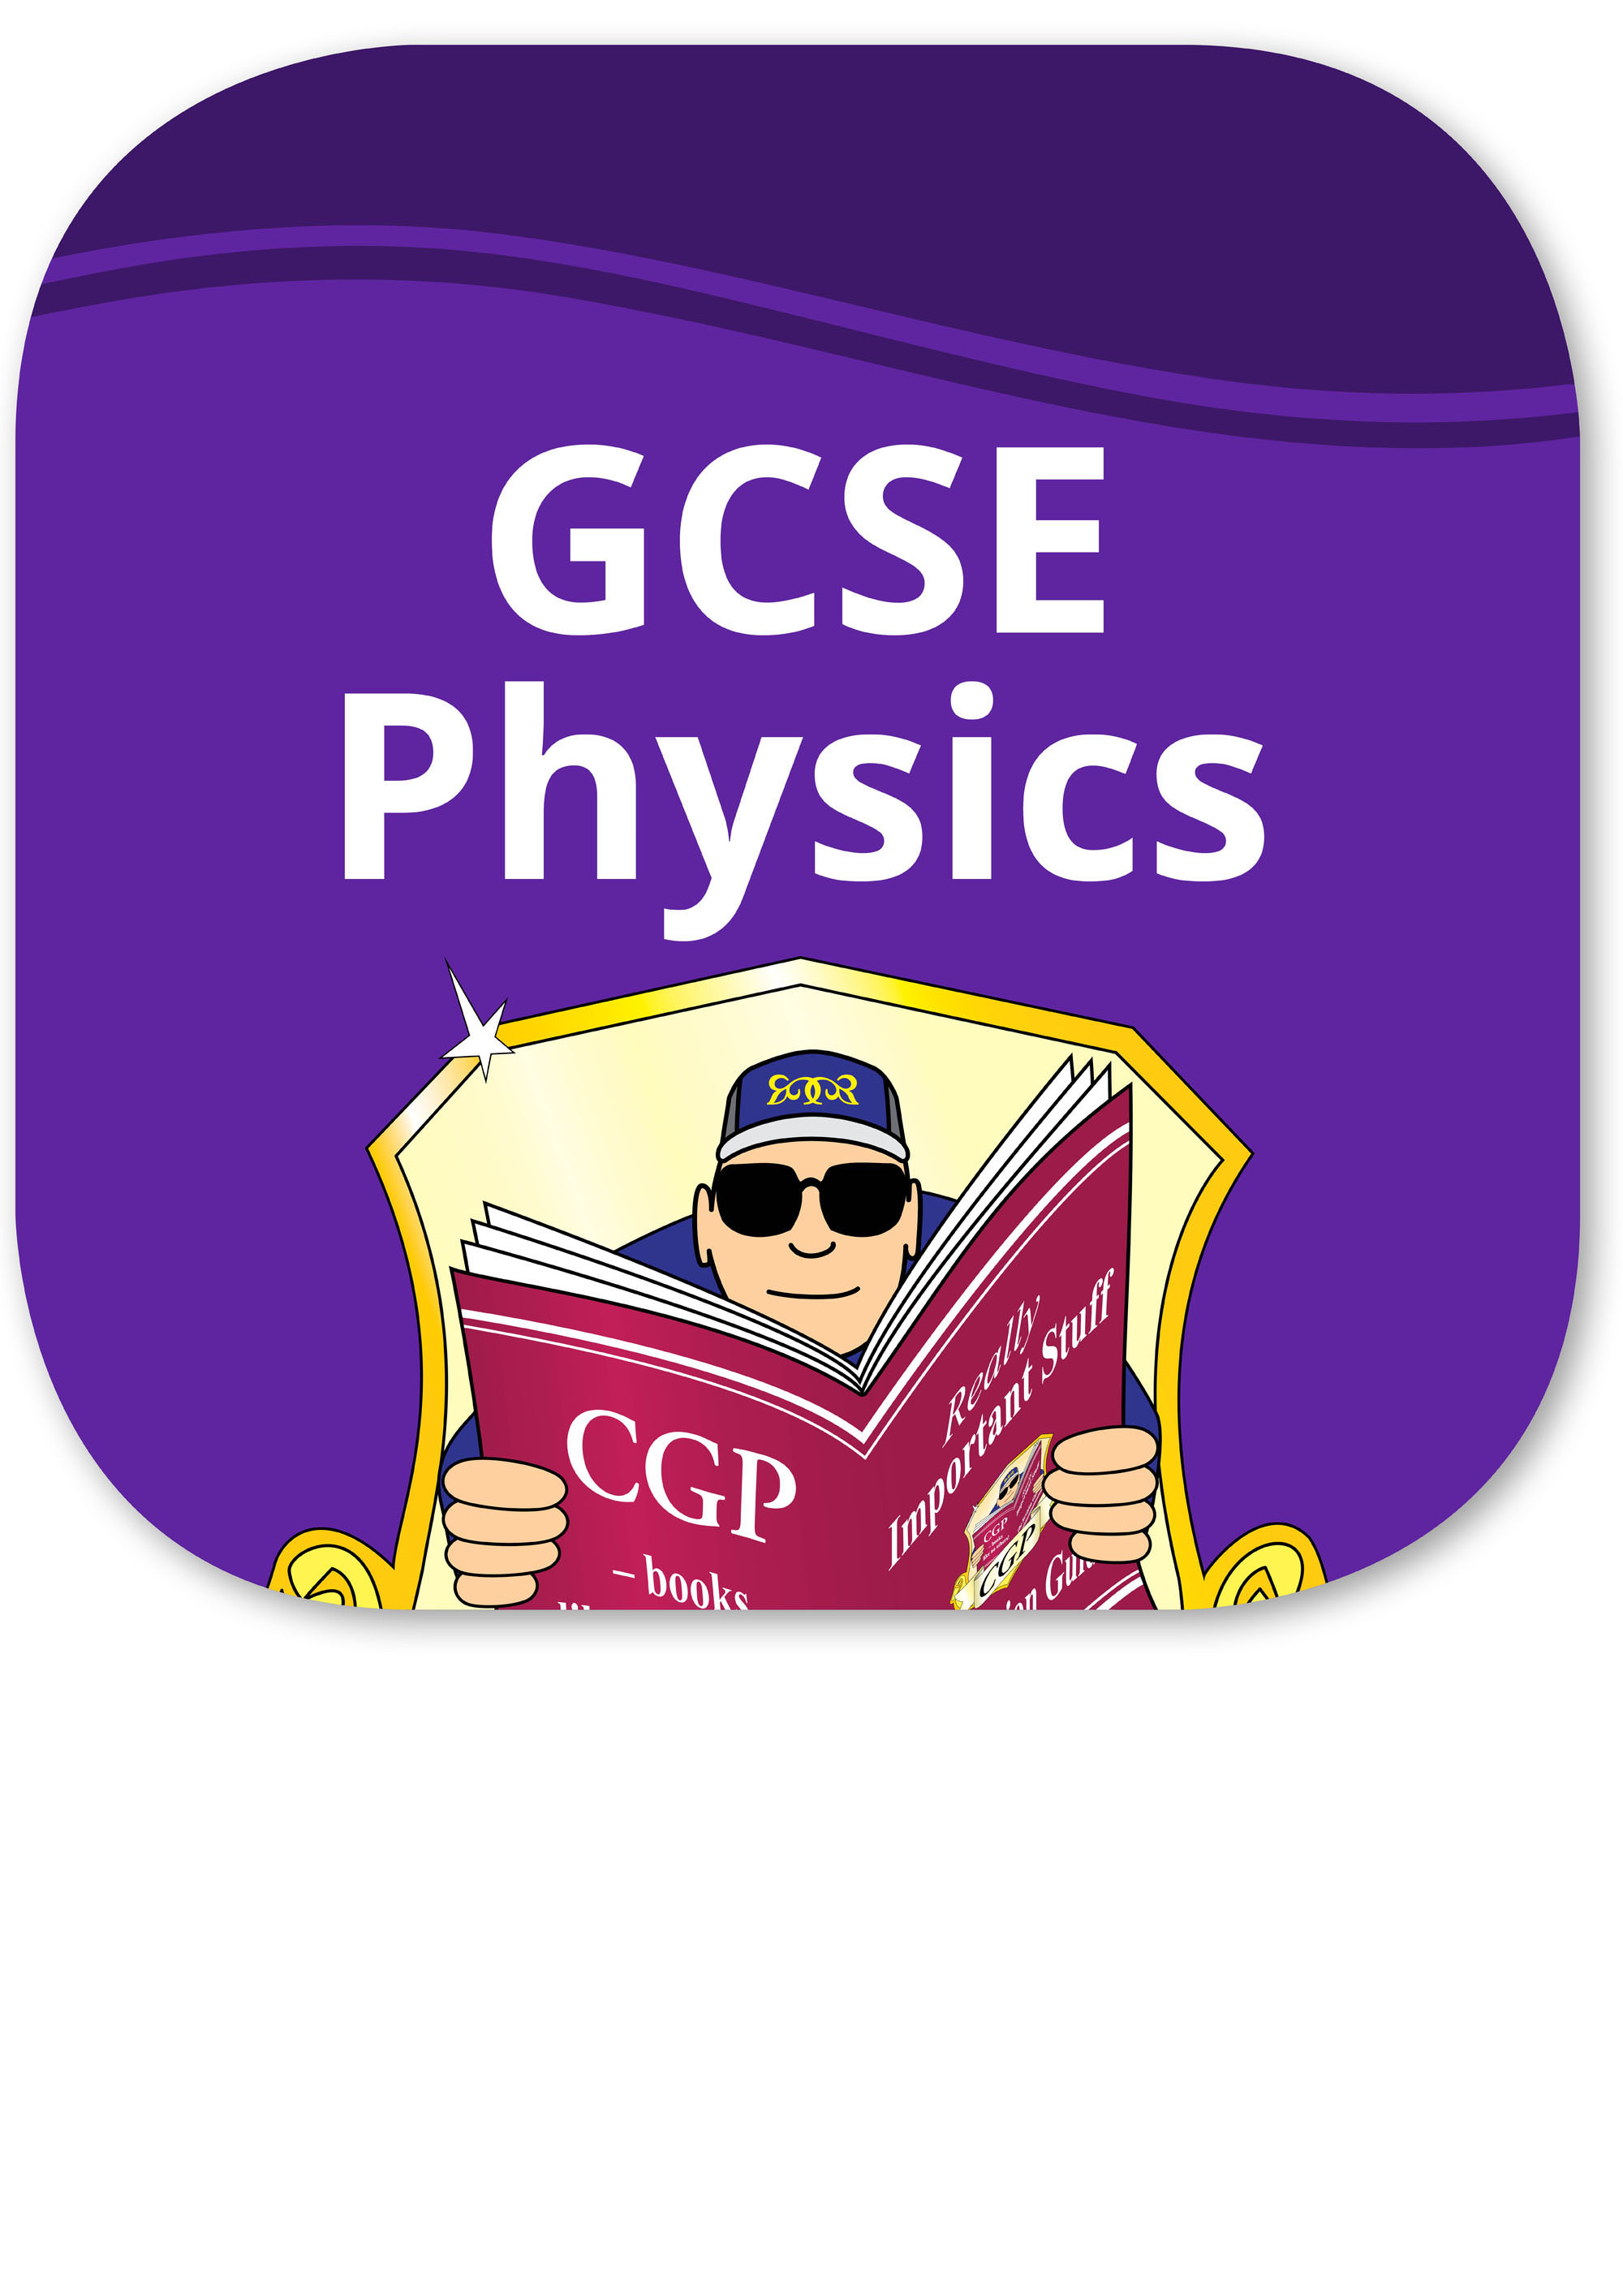 PAIT41 - New App: GCSE Physics AQA Revision - for iOS